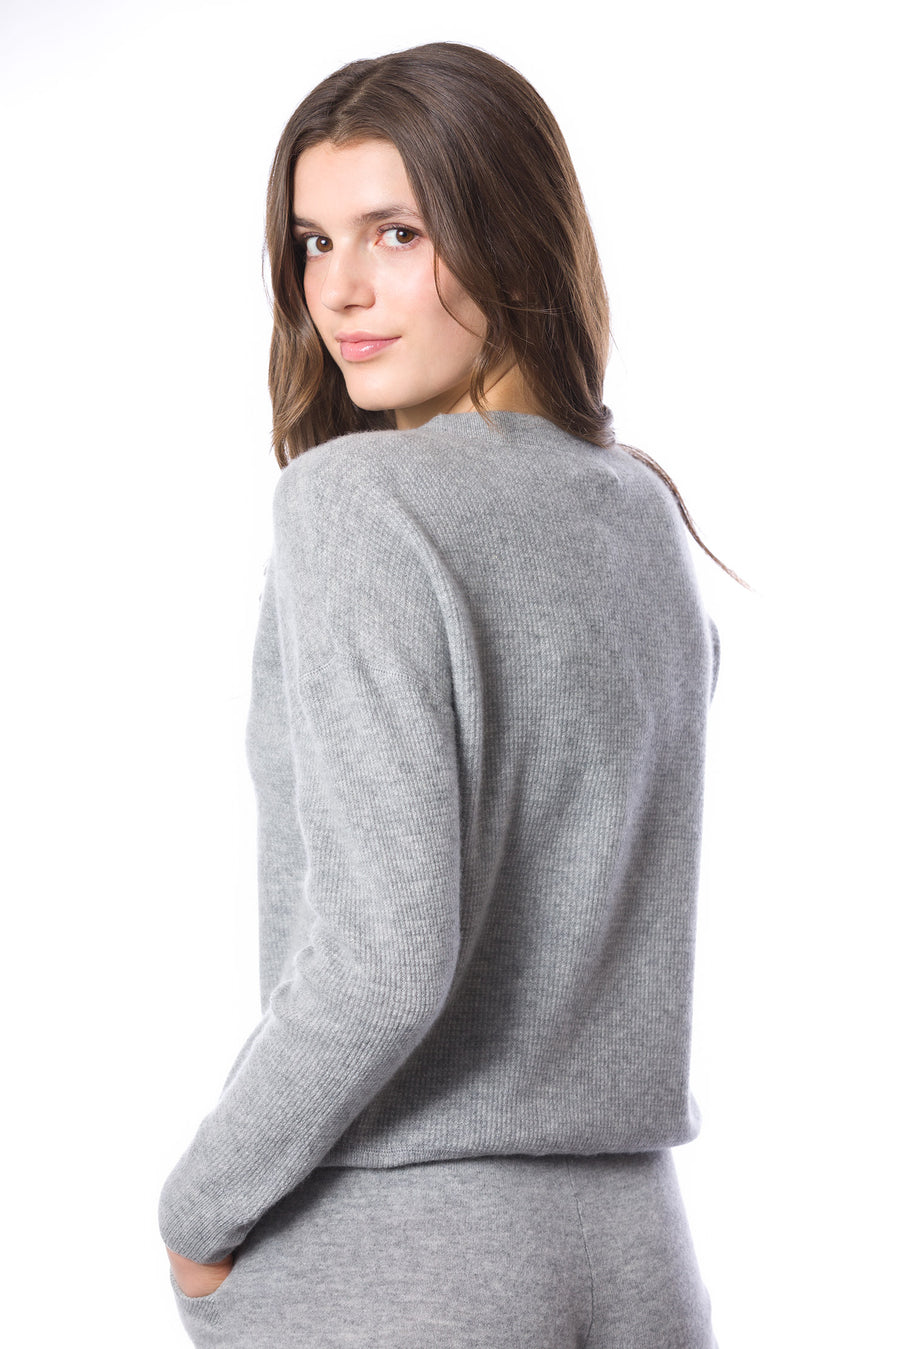 Sustainable Cashmere Waffle Knit Sweatshirt - Heather Grey - Dongli Cashmere